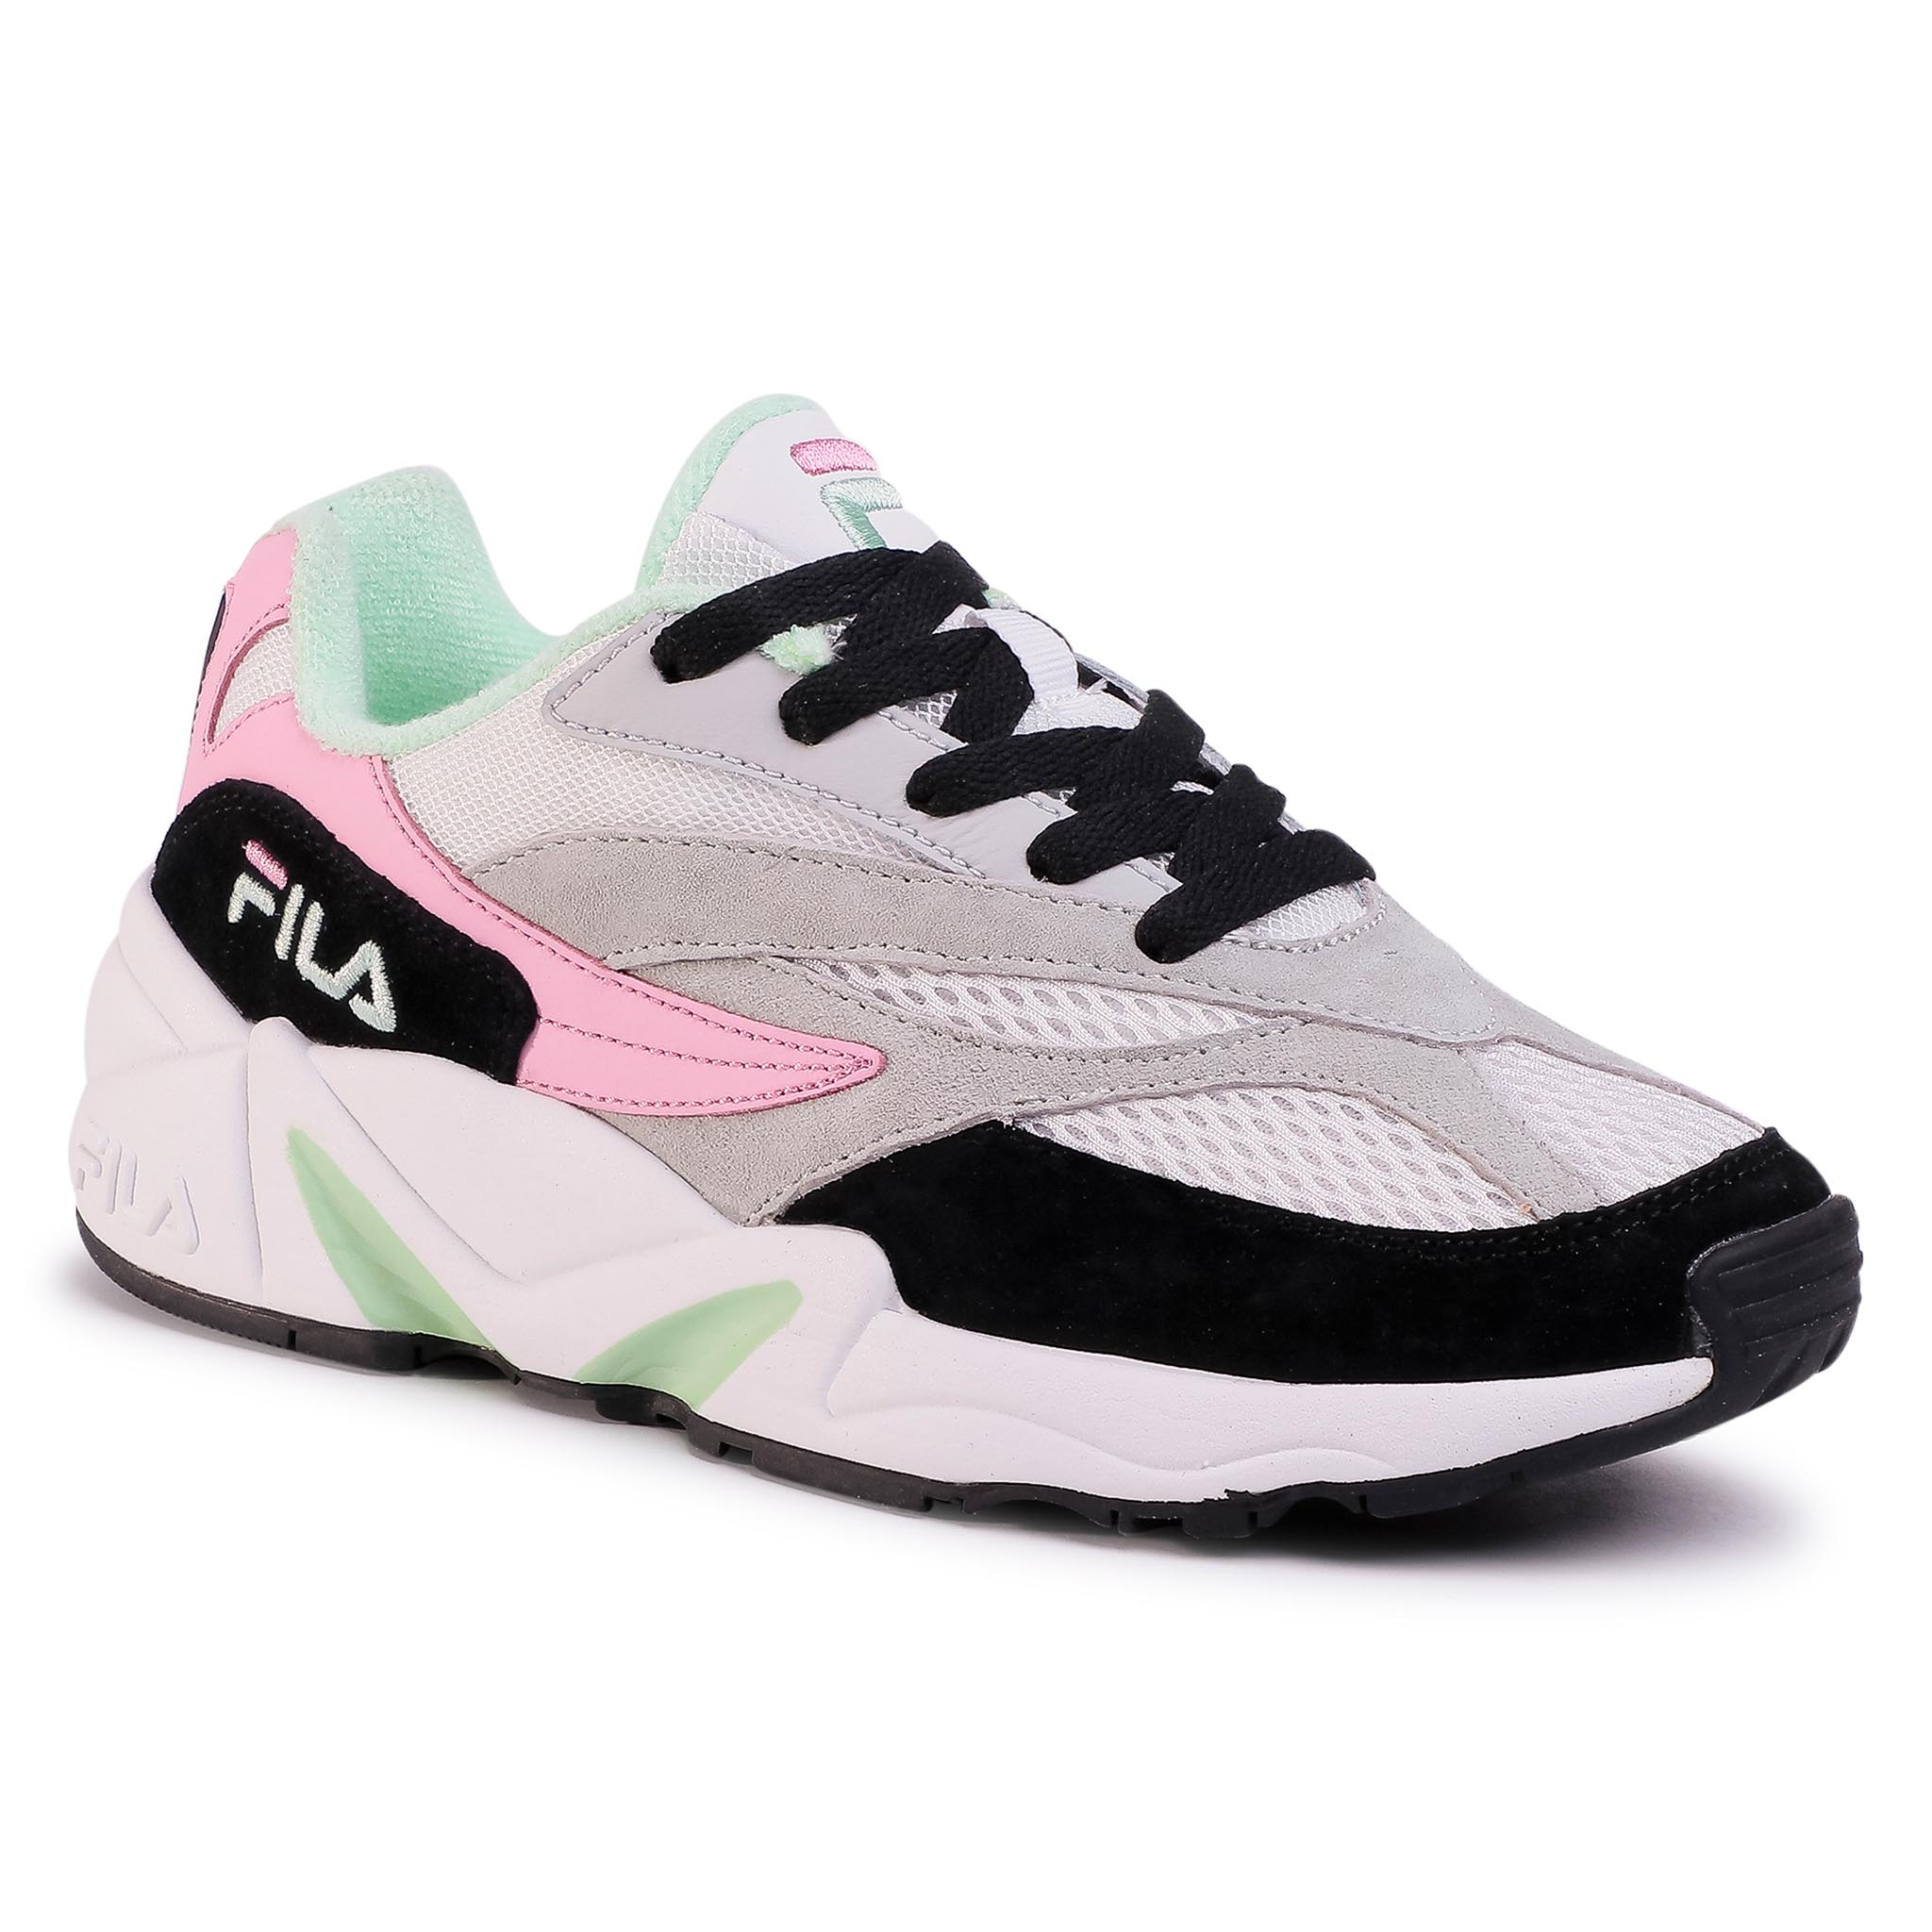 Sneakers FILA - V94M Low Wmn 1010600.13V Black/Rosebloom